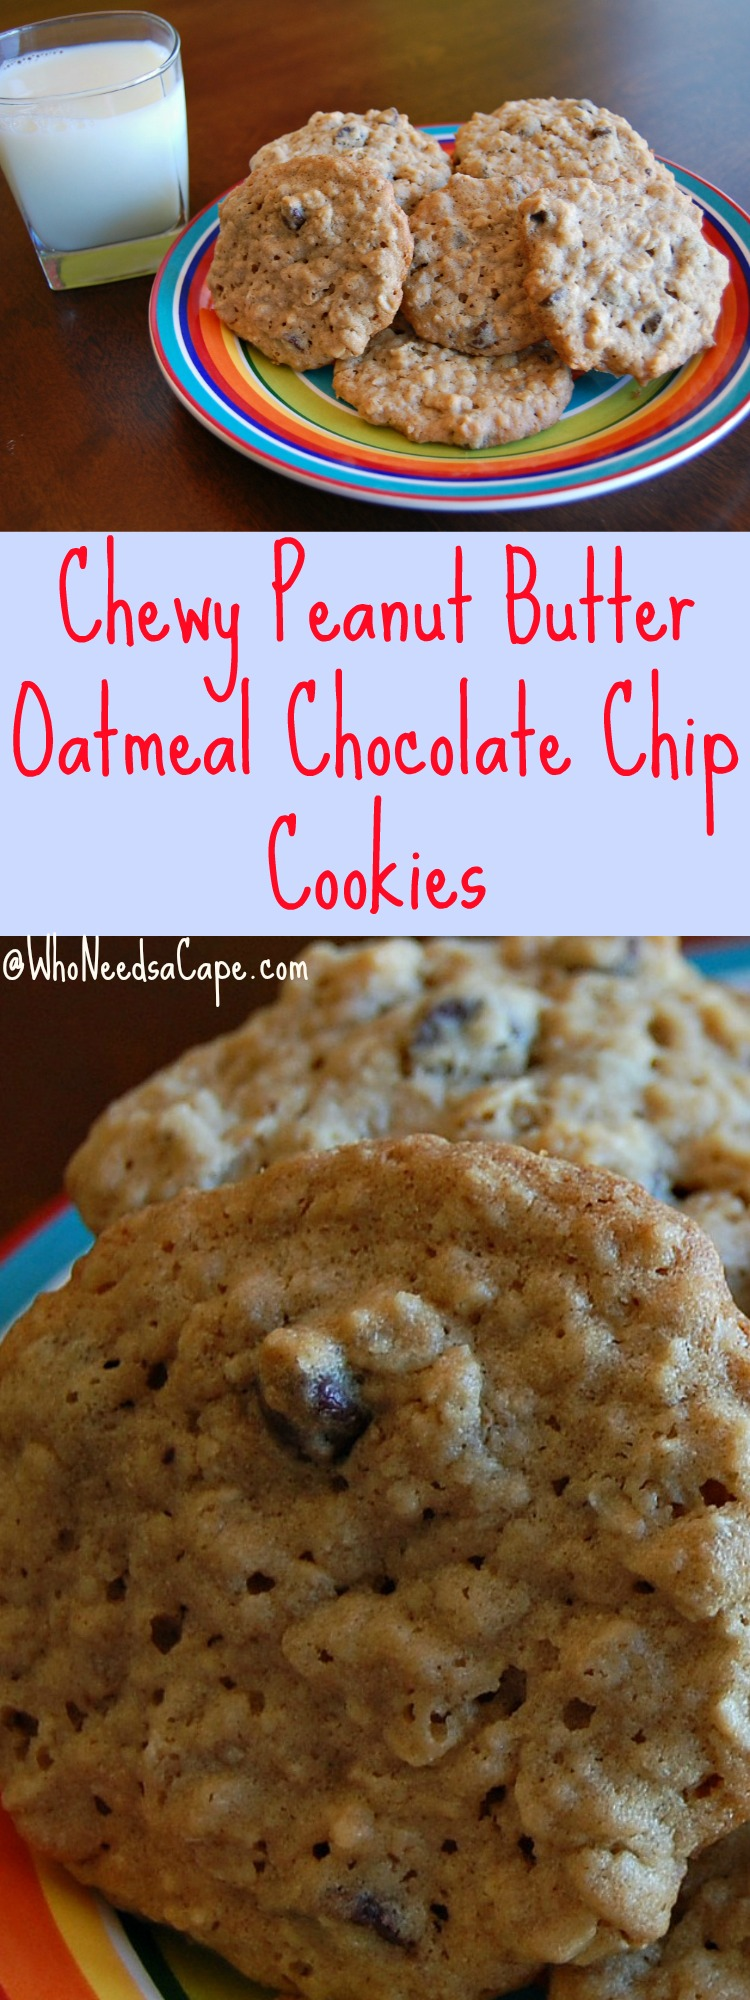 how to make chewy peanut butter oatmeal cookies